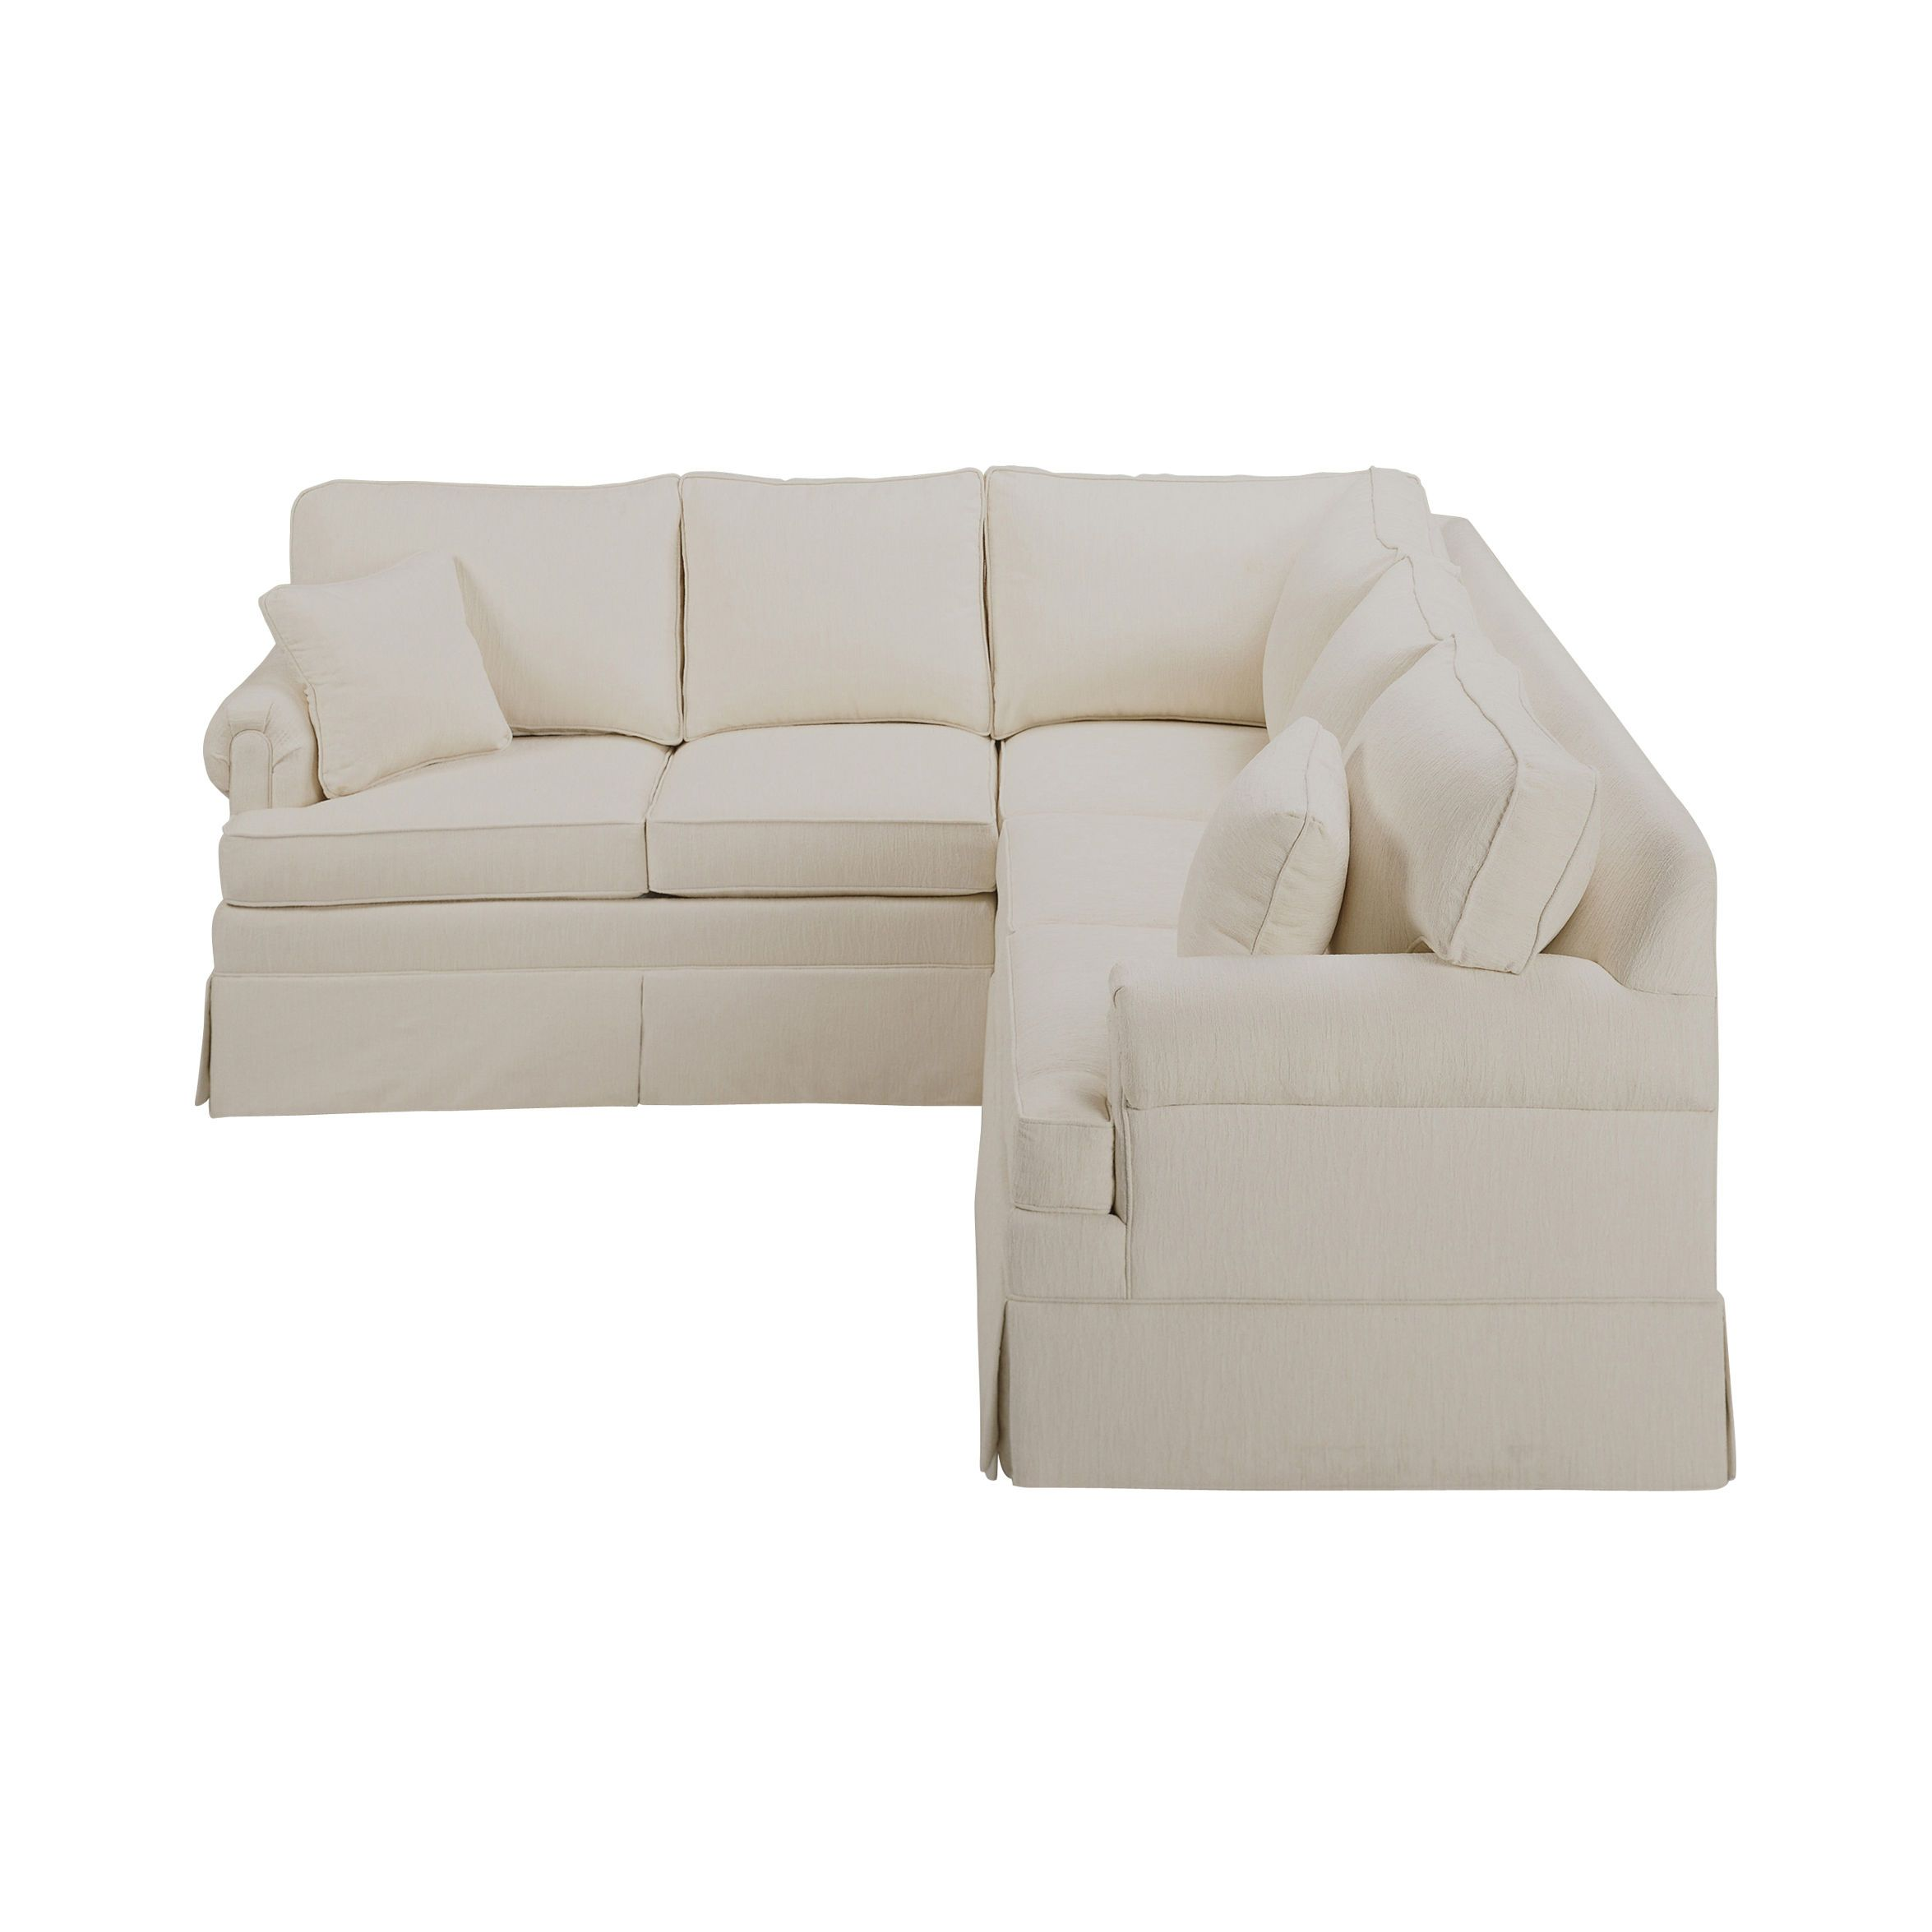 ethan allen paramount sofa liquidation reviews sectional us 87 x good